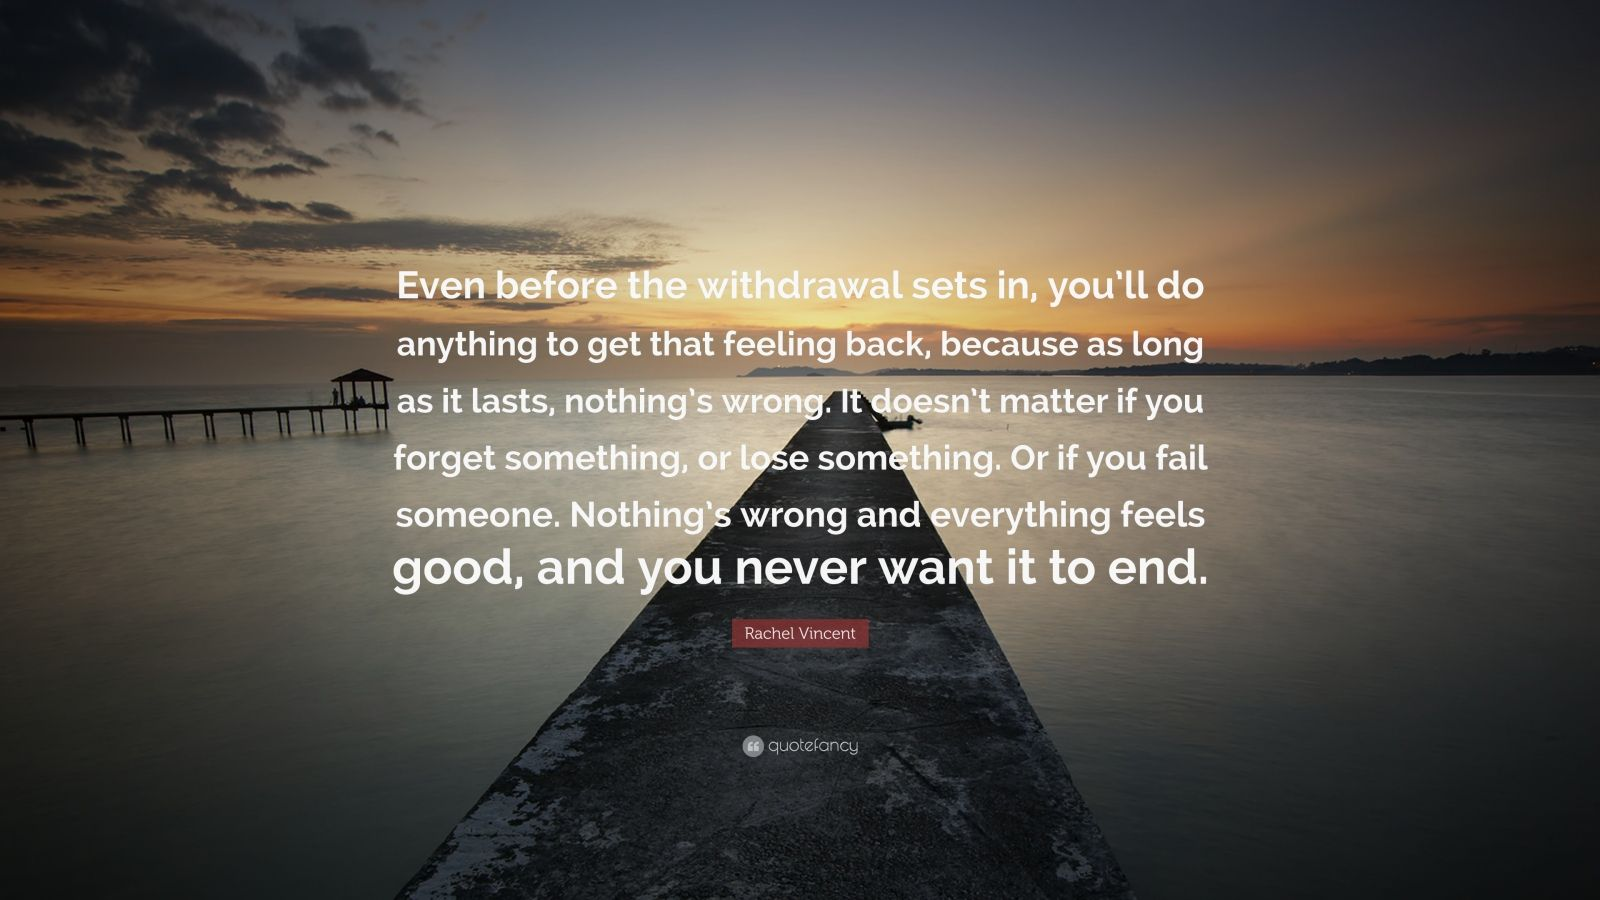 """Rachel Vincent Quote: """"Even before the withdrawal sets in, you'll do anything to get that feeling back, because as long as it lasts, nothing's wrong. It doesn't matter if you forget something, or lose something. Or if you fail someone. Nothing's wrong and everything feels good, and you never want it to end."""""""